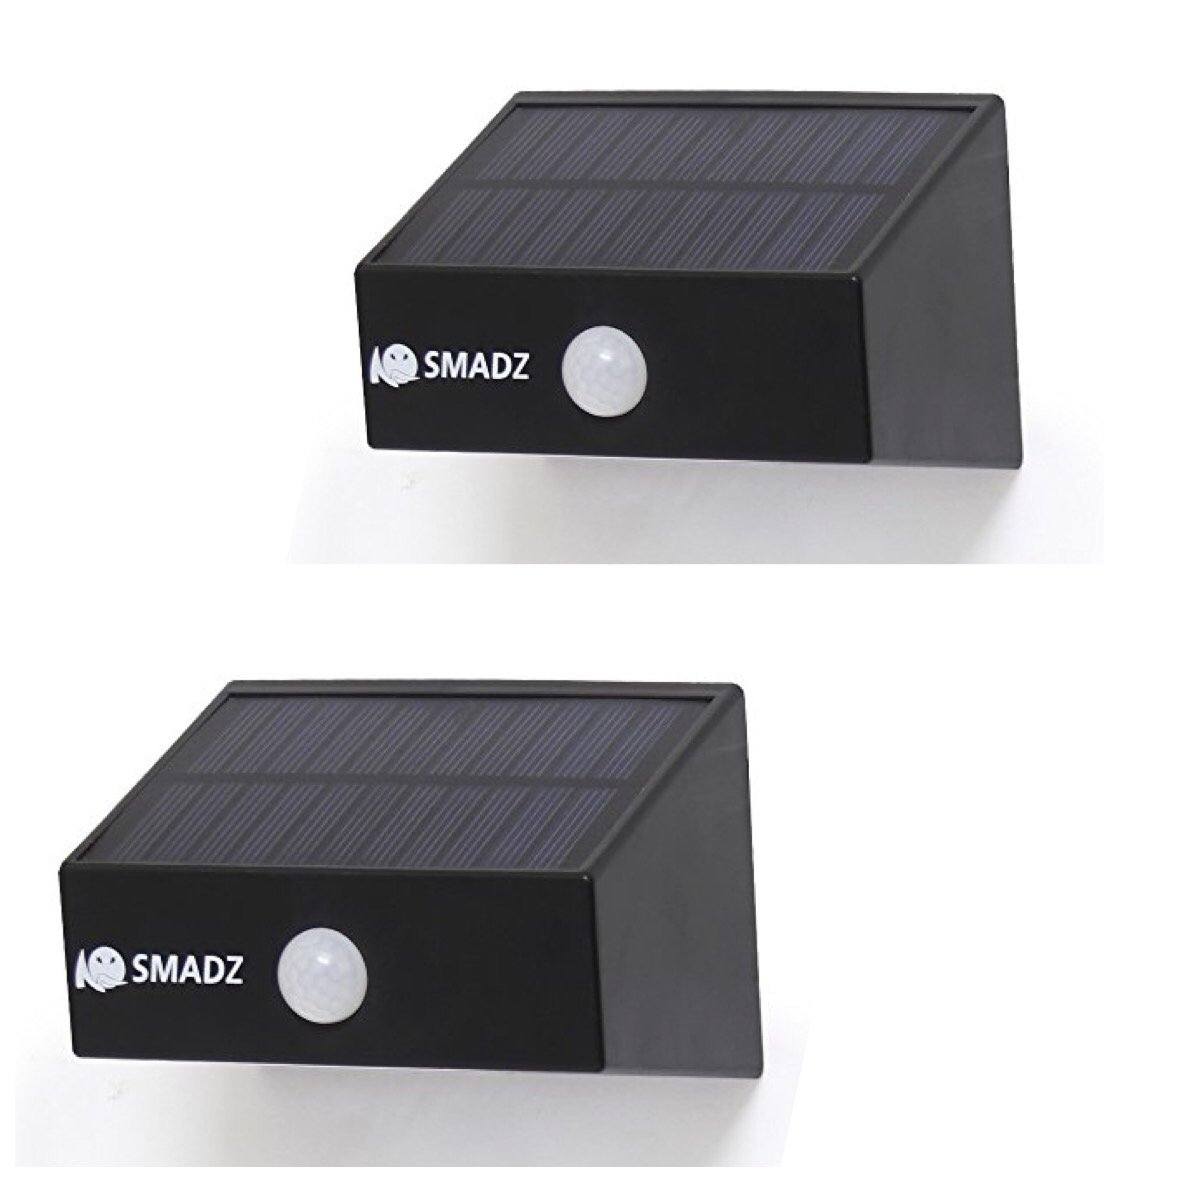 SMADZ SL12B Security Solar Motion Lights 8 LEDs Auto On/Off Wireless for Outdoor Garden Fence Wall Step Weatherproof (White Light,Pack of 2)